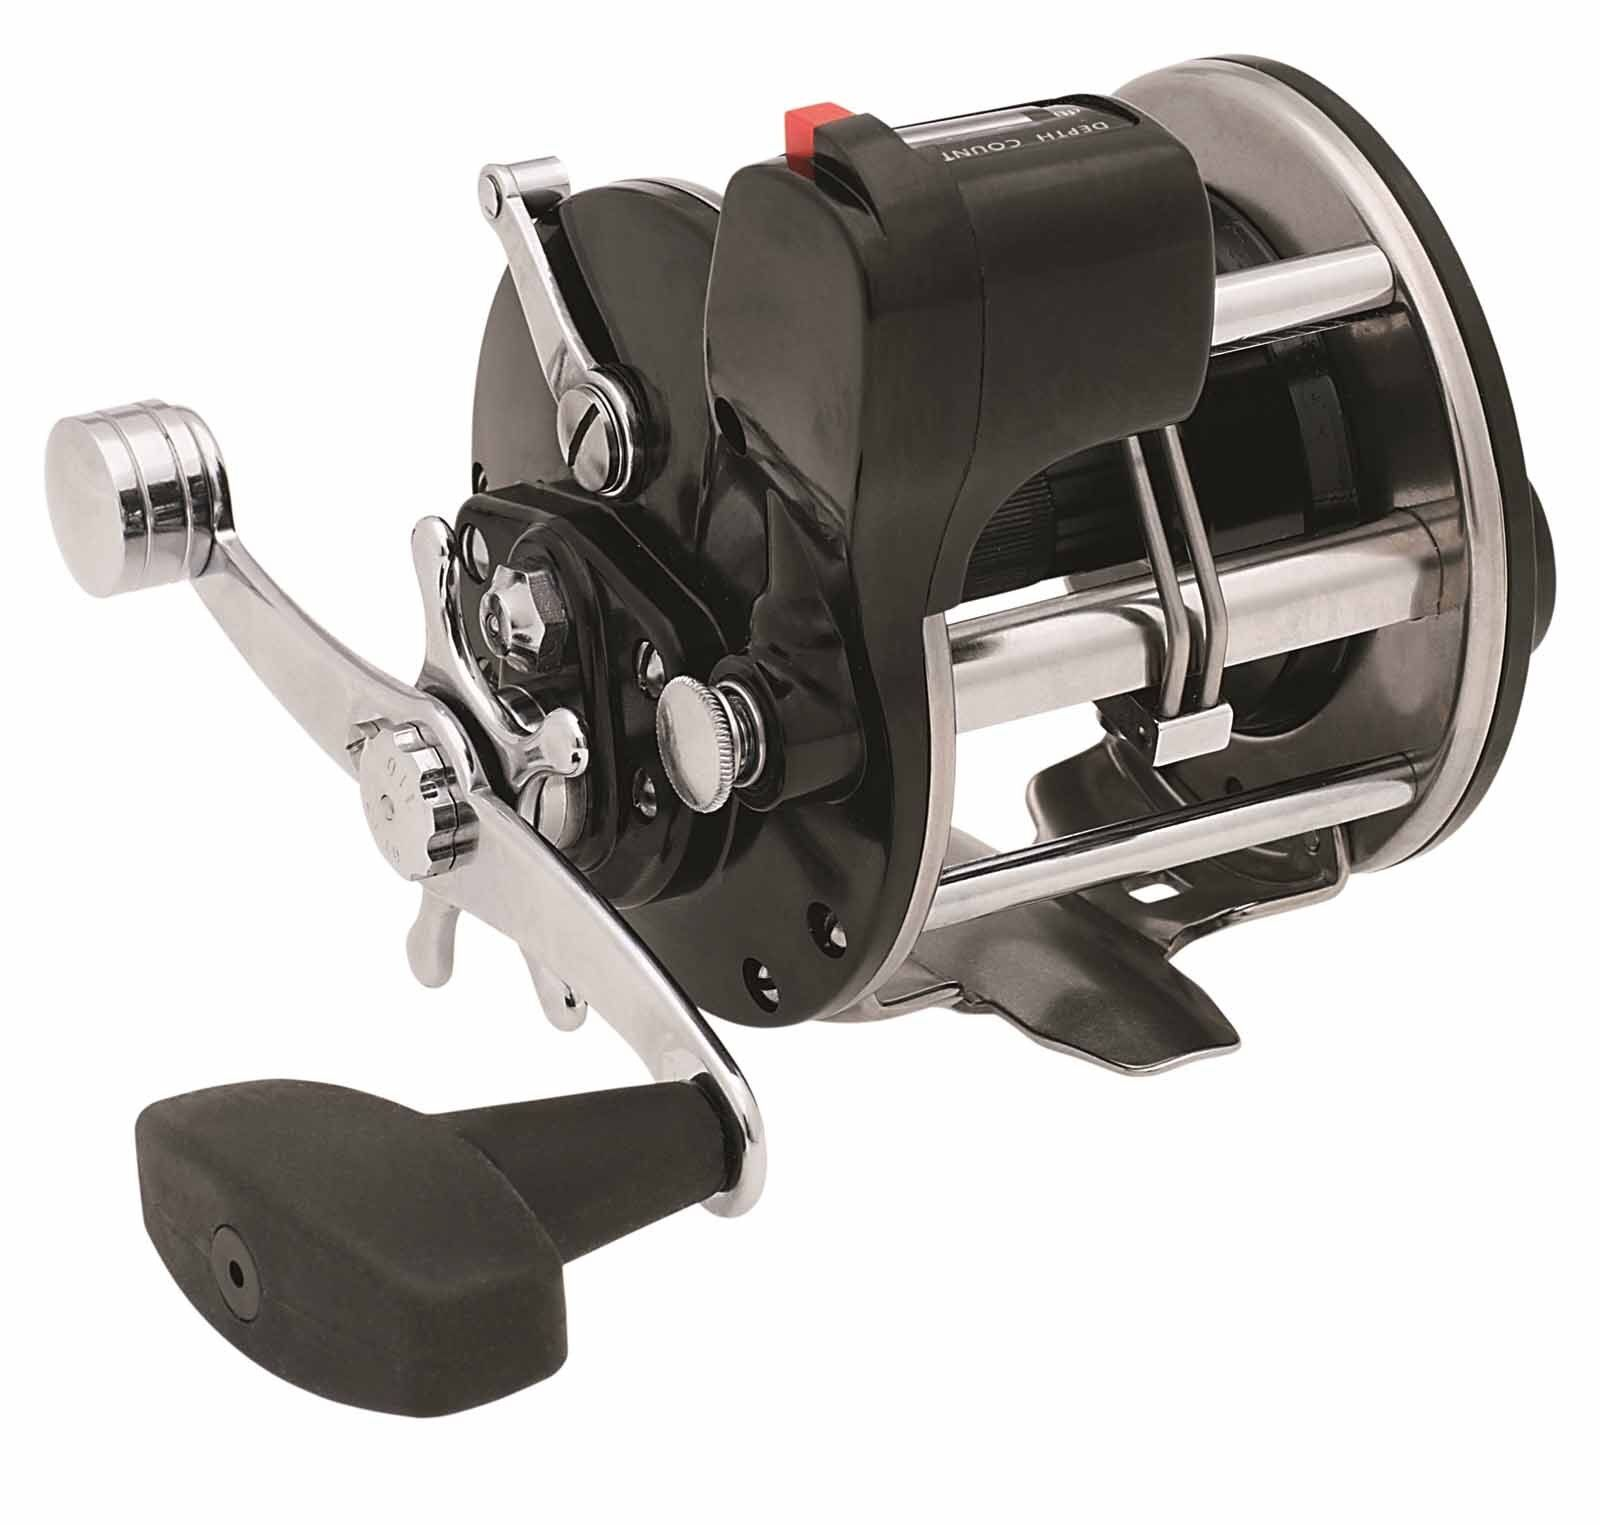 Penn General Purpose Level Wind 209LC Line Counter Sea Trolling Fishing Trolling Sea Reel 9da63d